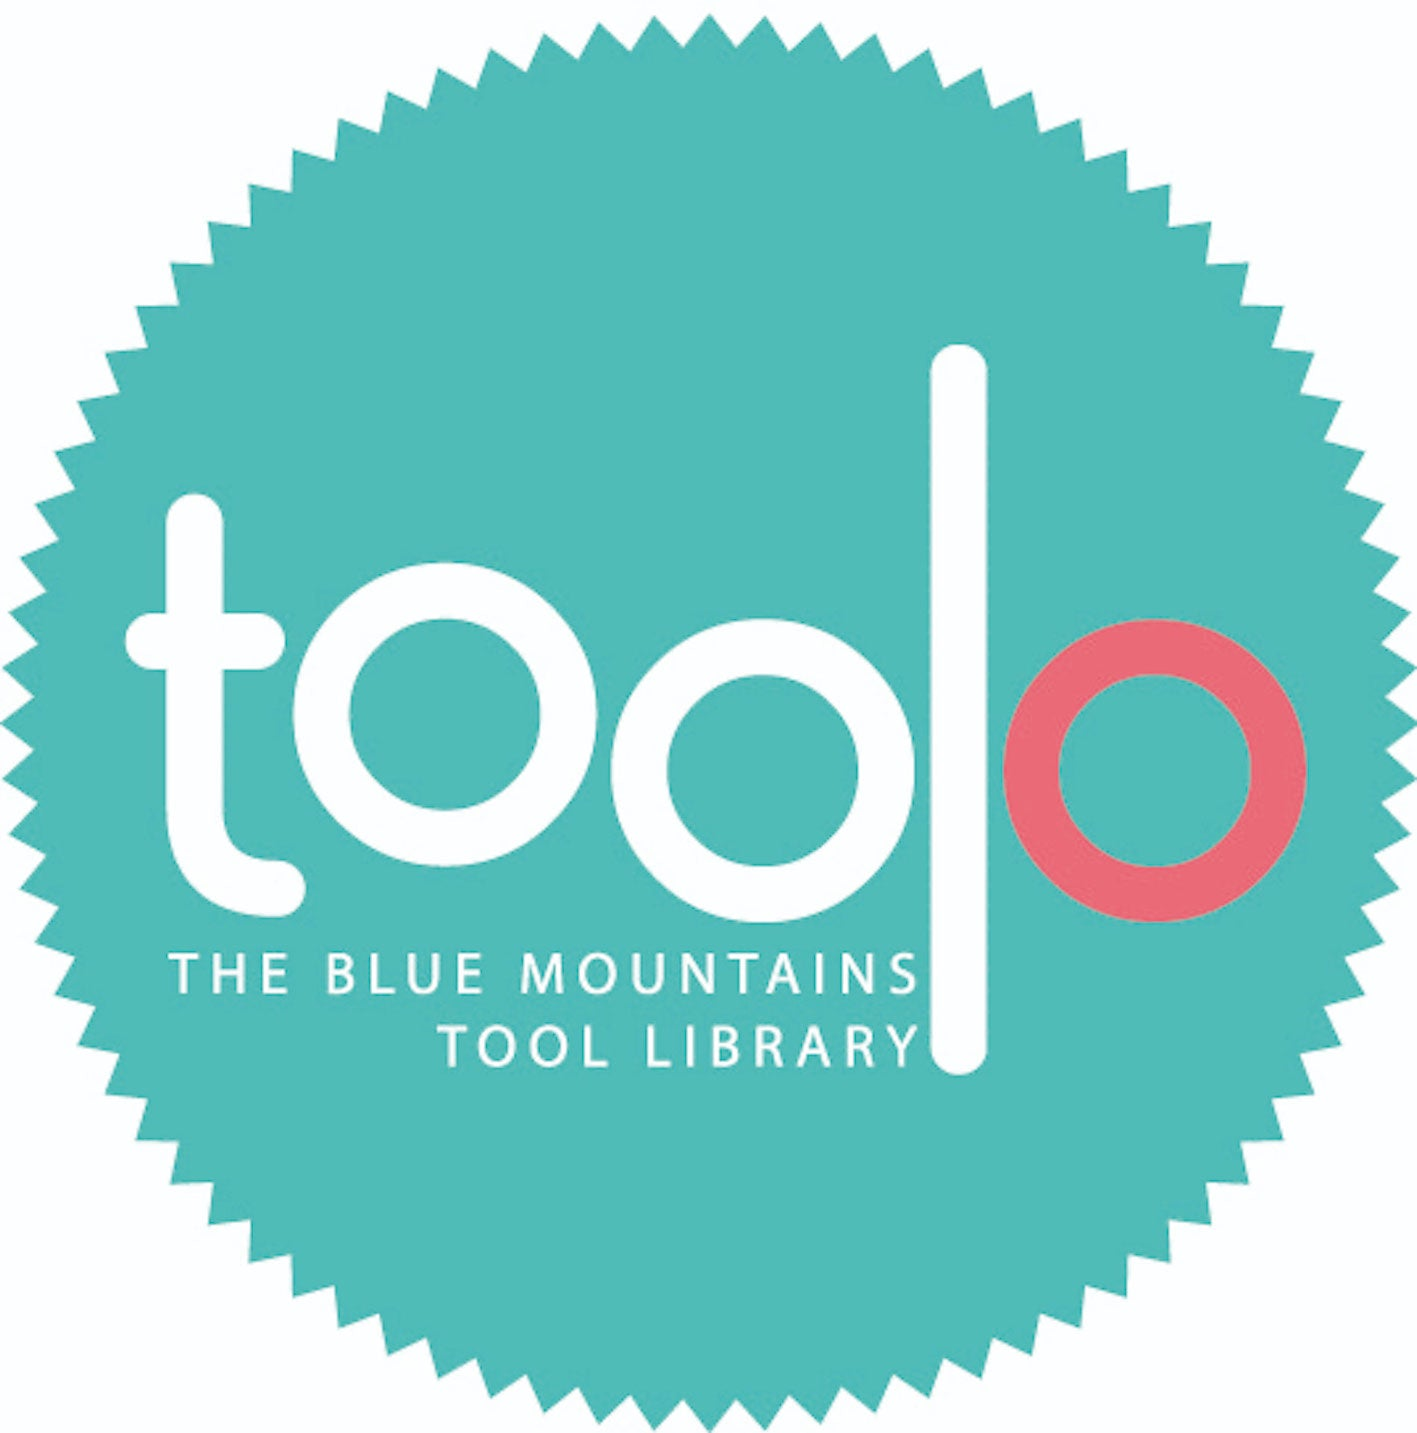 Toolo - The Blue Mountains Tool Library